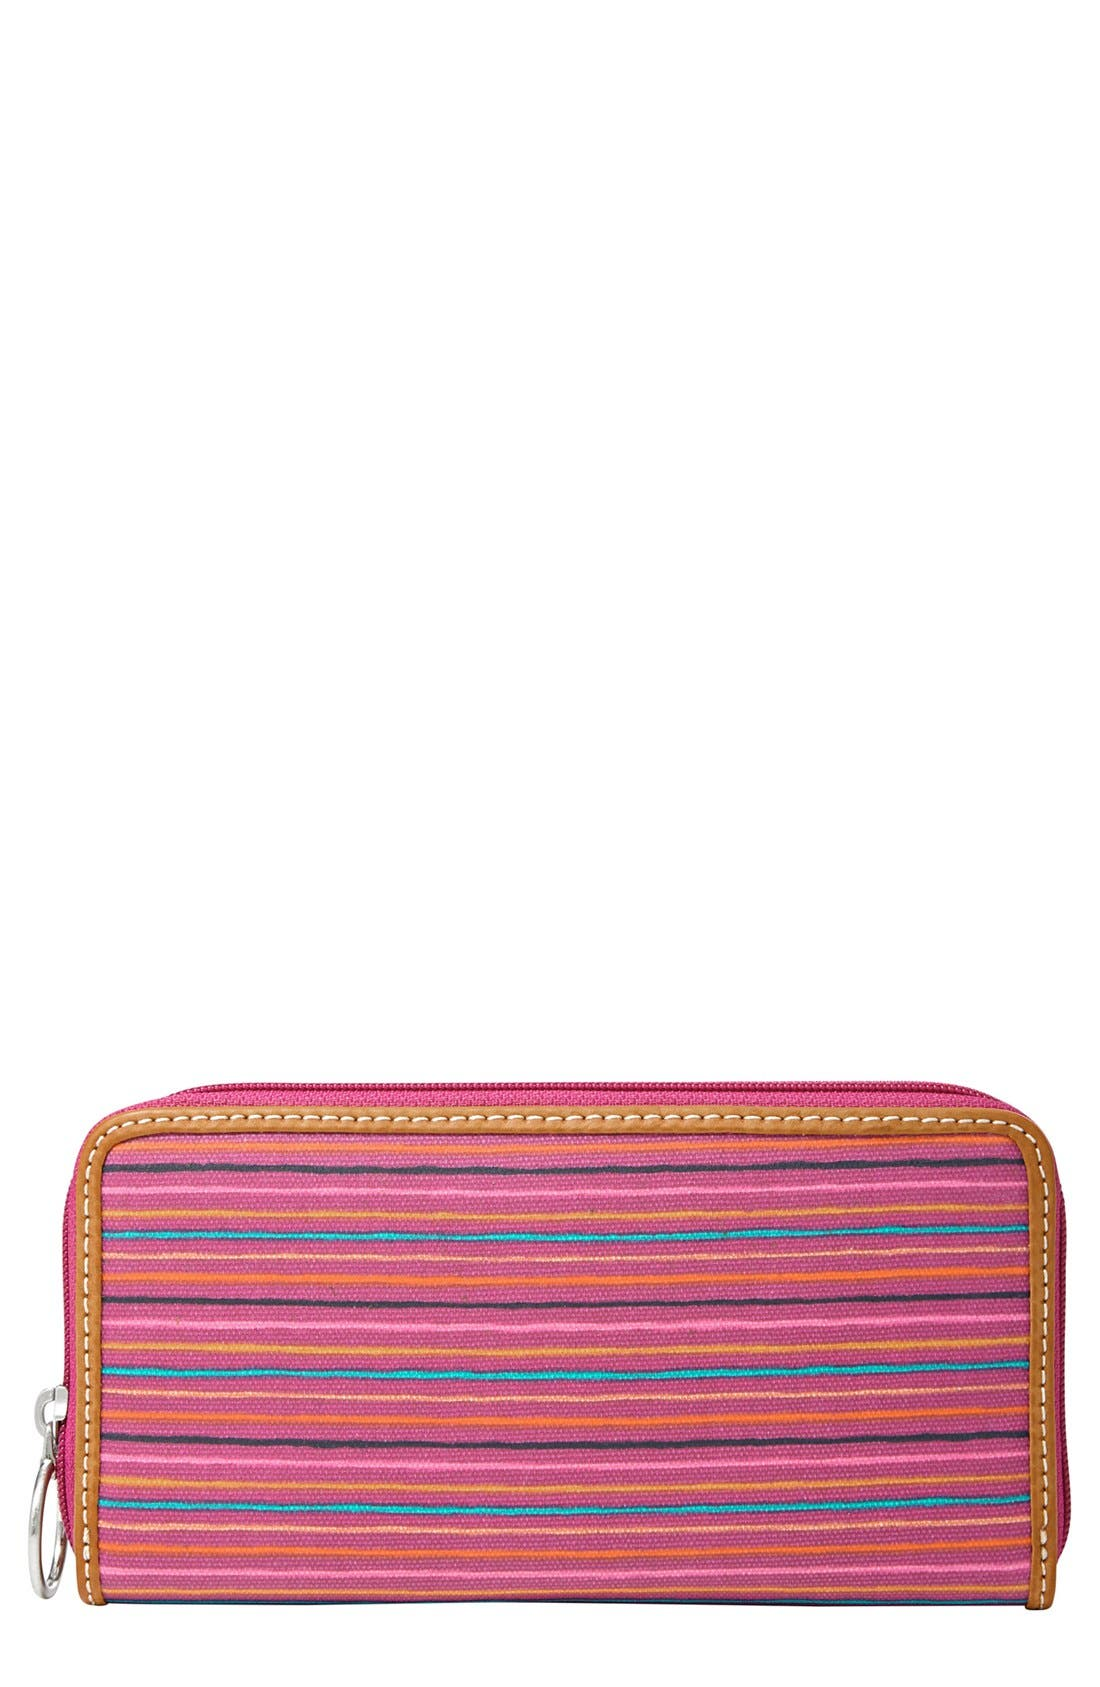 Main Image - Fossil 'Key-Per' Coated Canvas Clutch Wallet